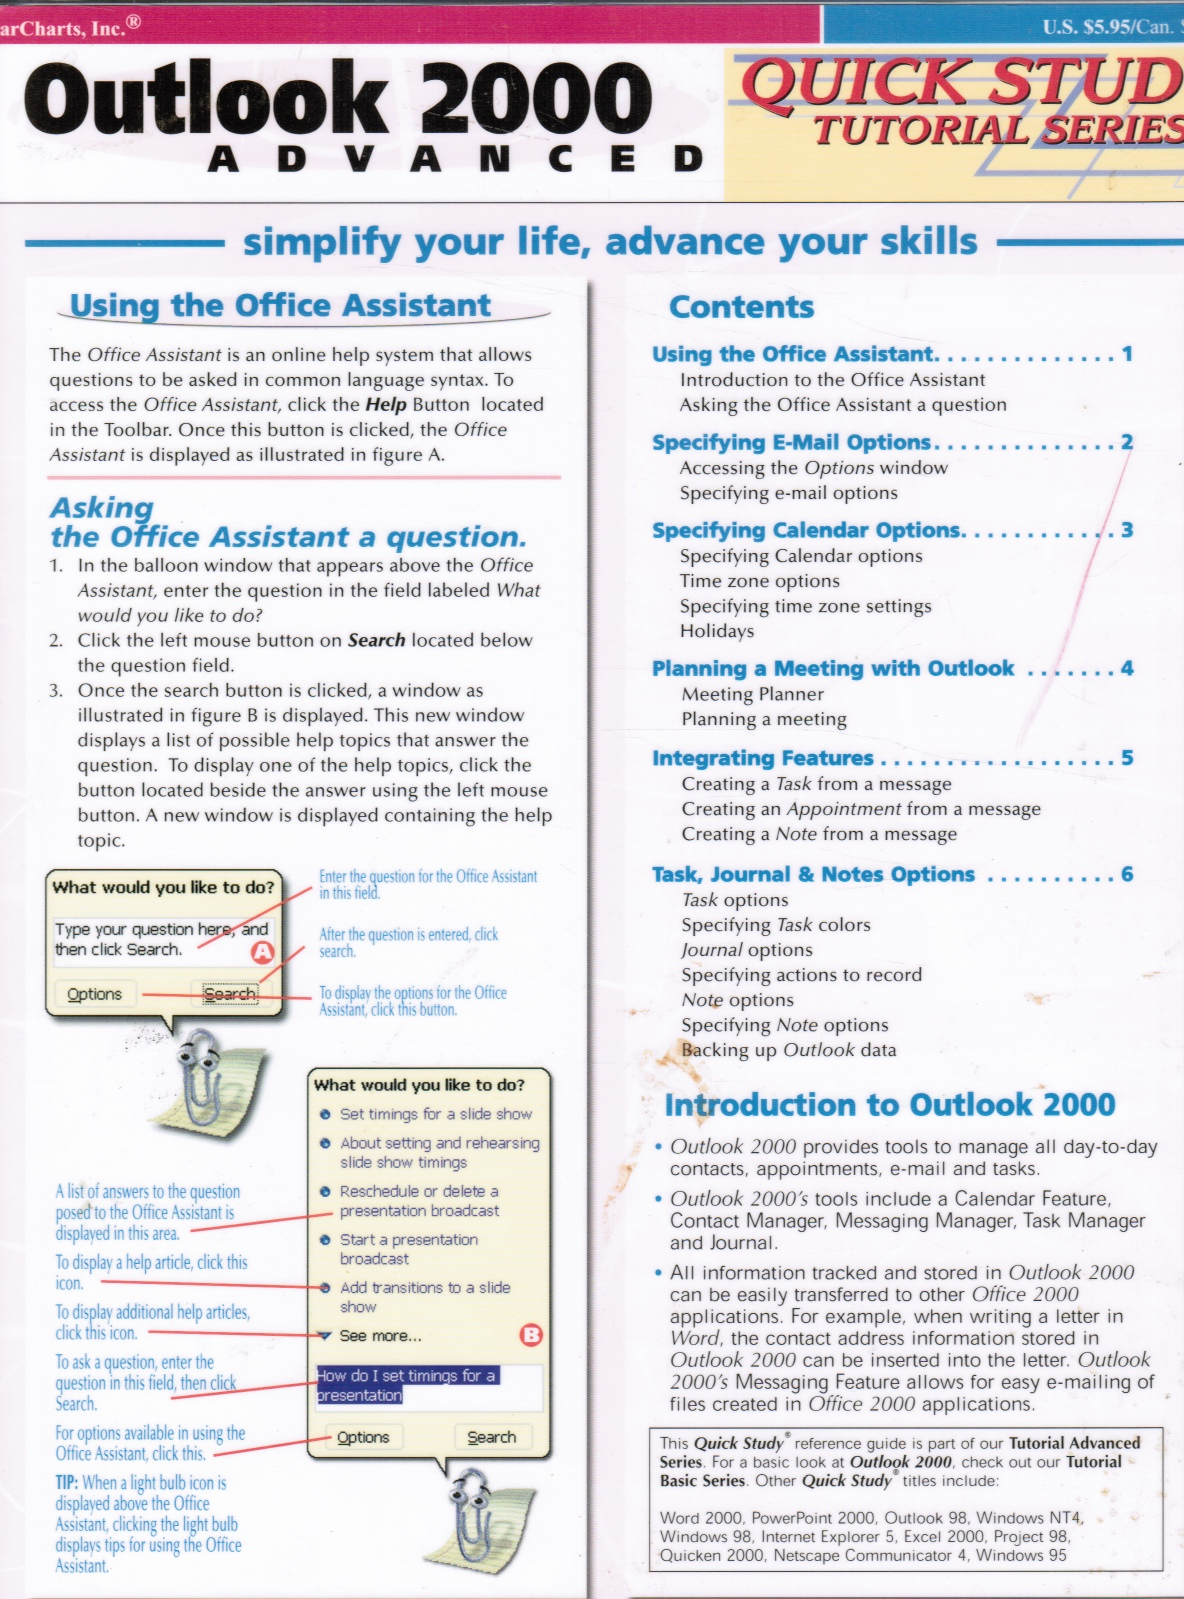 Image for Outlook 2000 Advanced Quick Study Tutorial Series